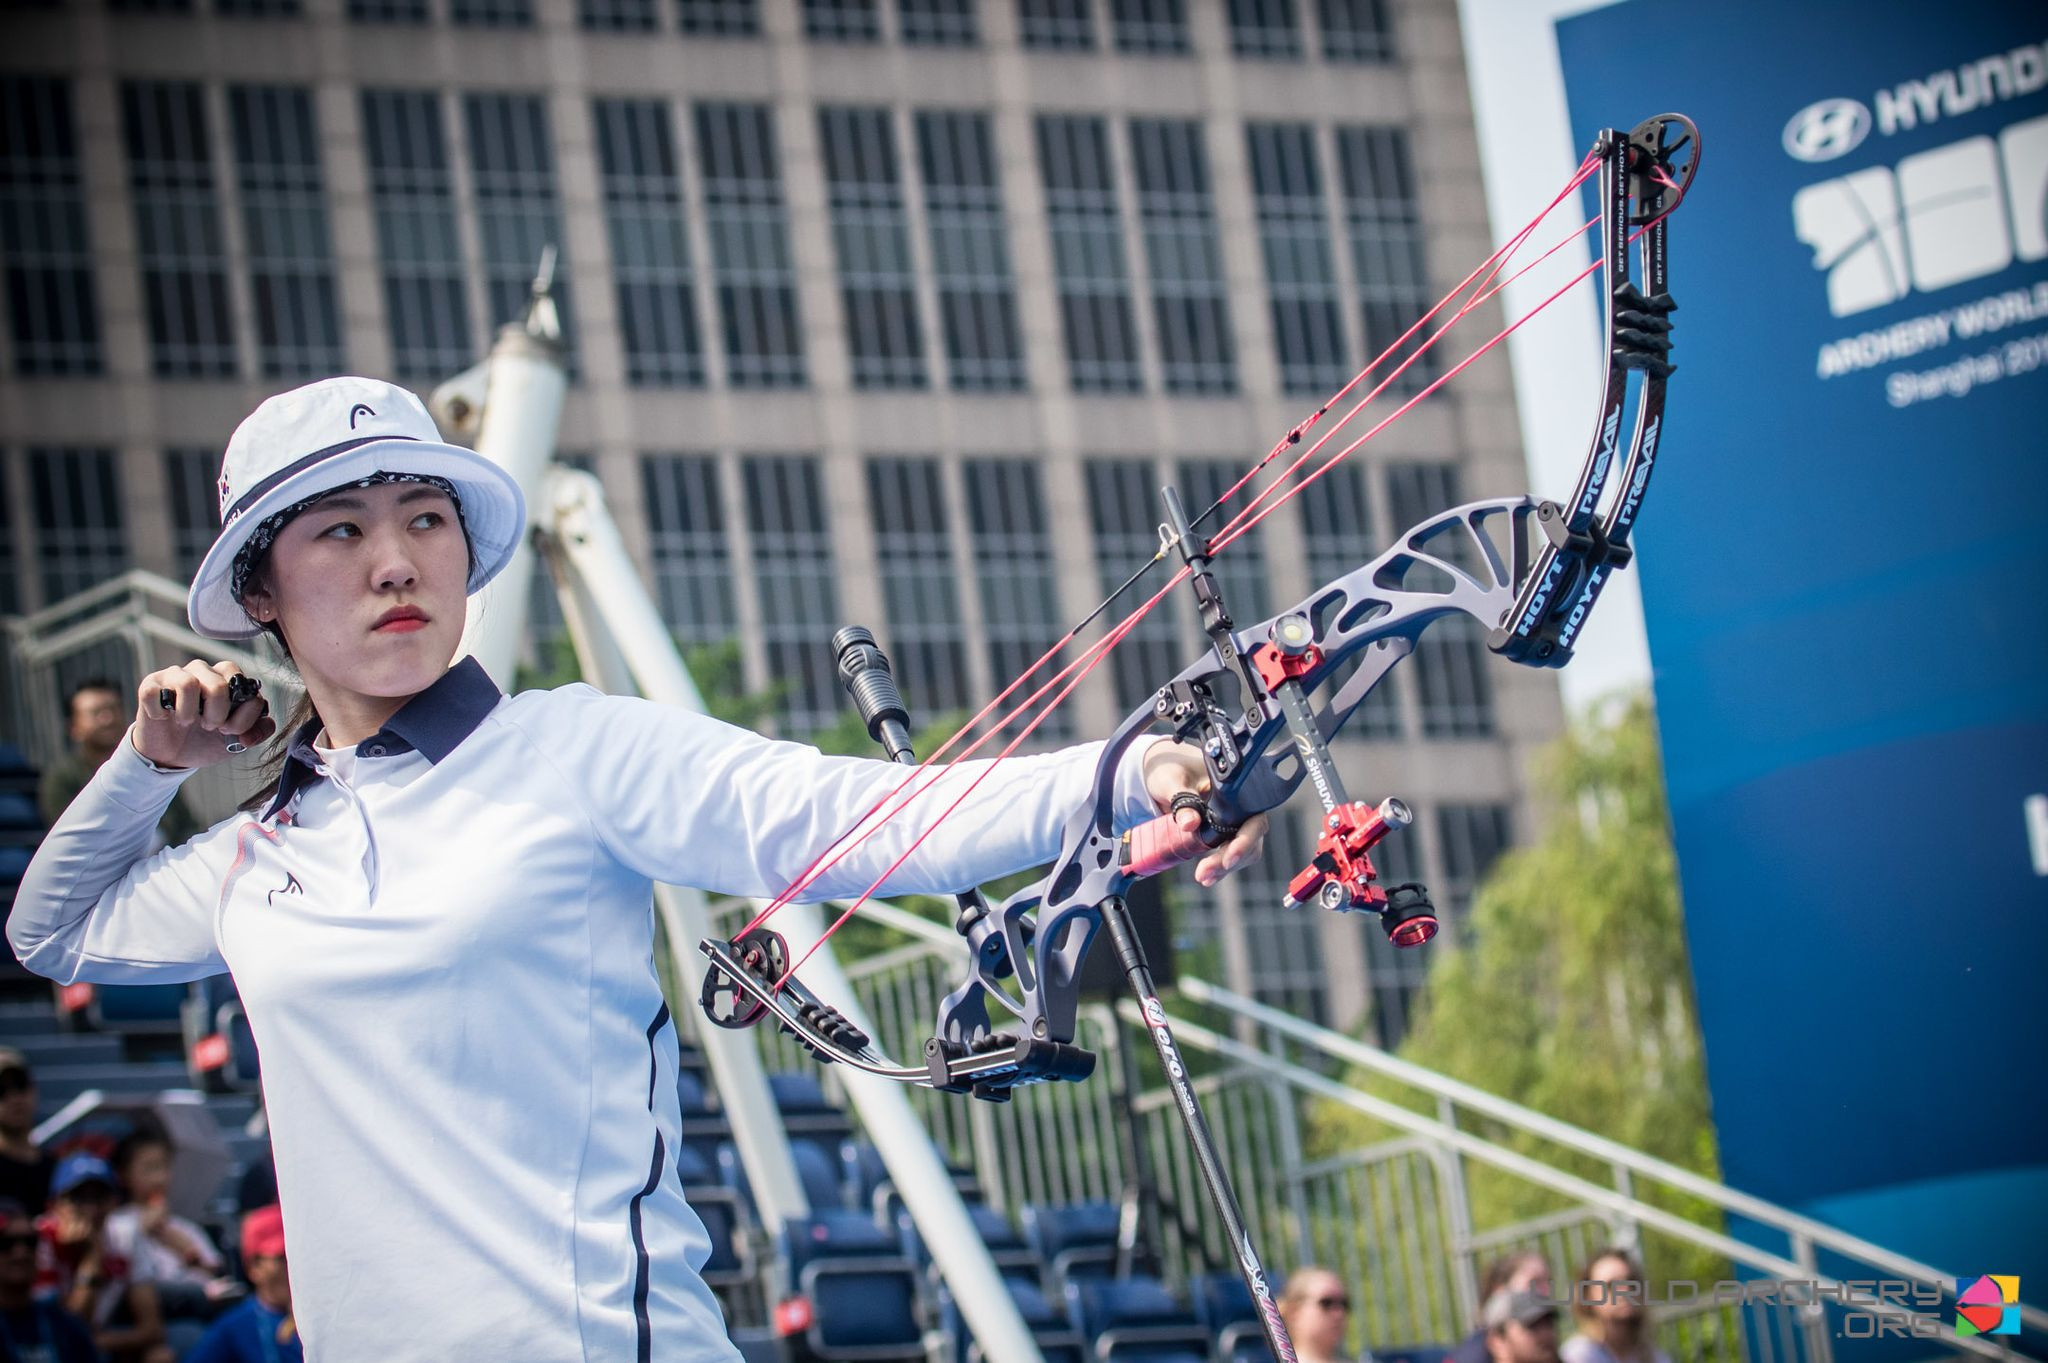 South Korea's 21-year-old So Chaewon had one chance to earn a place in the season's World Cup Final by winning her compound women final in Shanghai today, and she took it ©World Archery